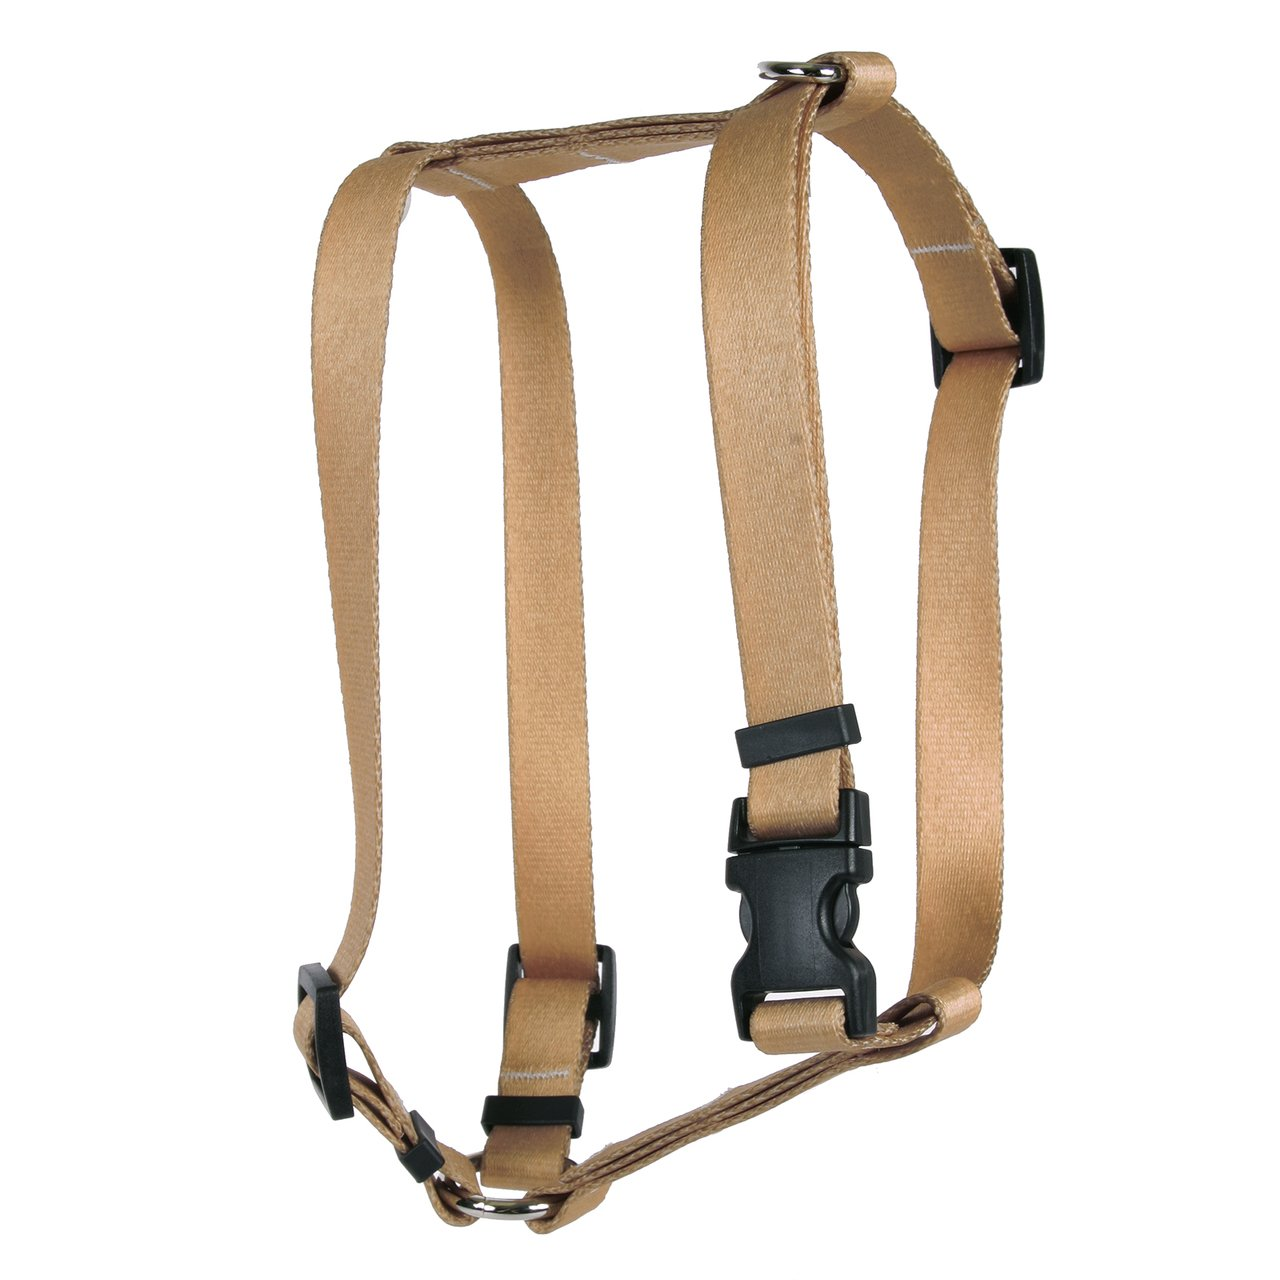 Yellow Dog Design Tan Simple Solid Roman Style H Dog Harness-Small/Medium-3/4 and fits Chest 14 to 20'' by Yellow Dog Design